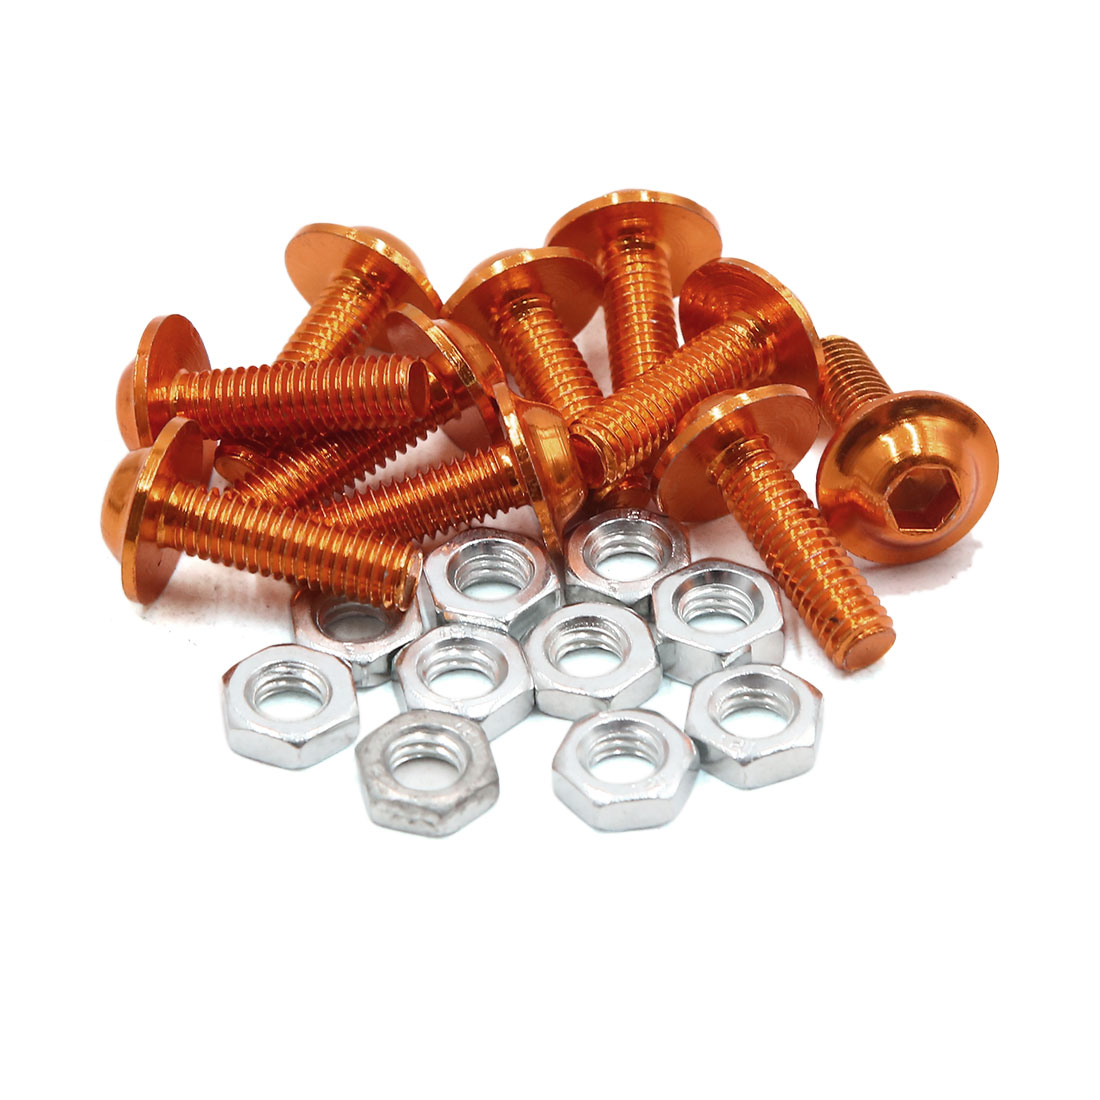 10pcs M6 Orange Aluminum Alloy Hex Socket Head Motorcycle Bolts Screws Nuts